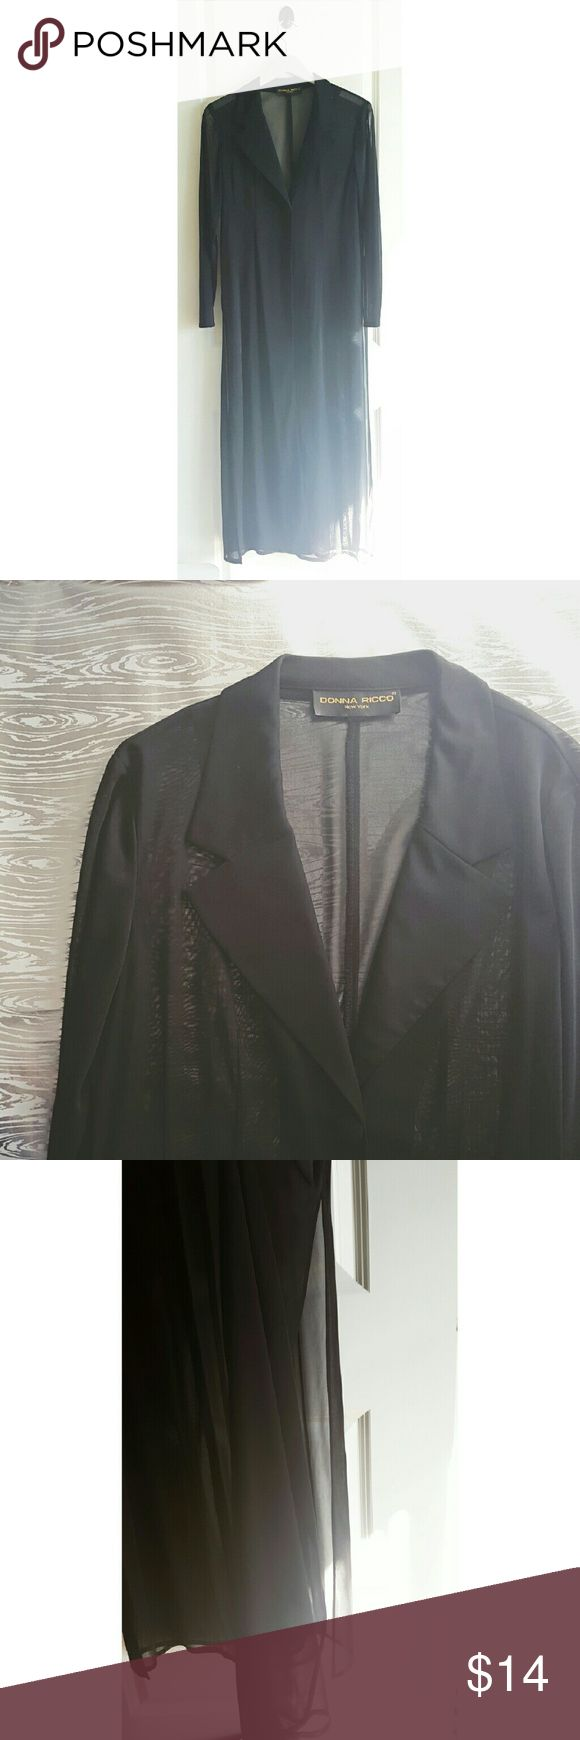 """VTG Donna Ricco NY Sheer Full Length Dress Jacket Beautiful sheer dress jacket! Wear it over your favorite sundress for an extra touch of drama or spice up your usual shorts and tee. Features a slit up both sides that measures 28"""" up. Measurements have been taken. There is no size tag but according to measurements I am marking a large. 📏 Bust- 40"""" Shoulder to Hem- 54""""  💖 Every listing purchased enters you in for a gift card drawing at the end of the month. Donna Ricco Jackets & Coats"""